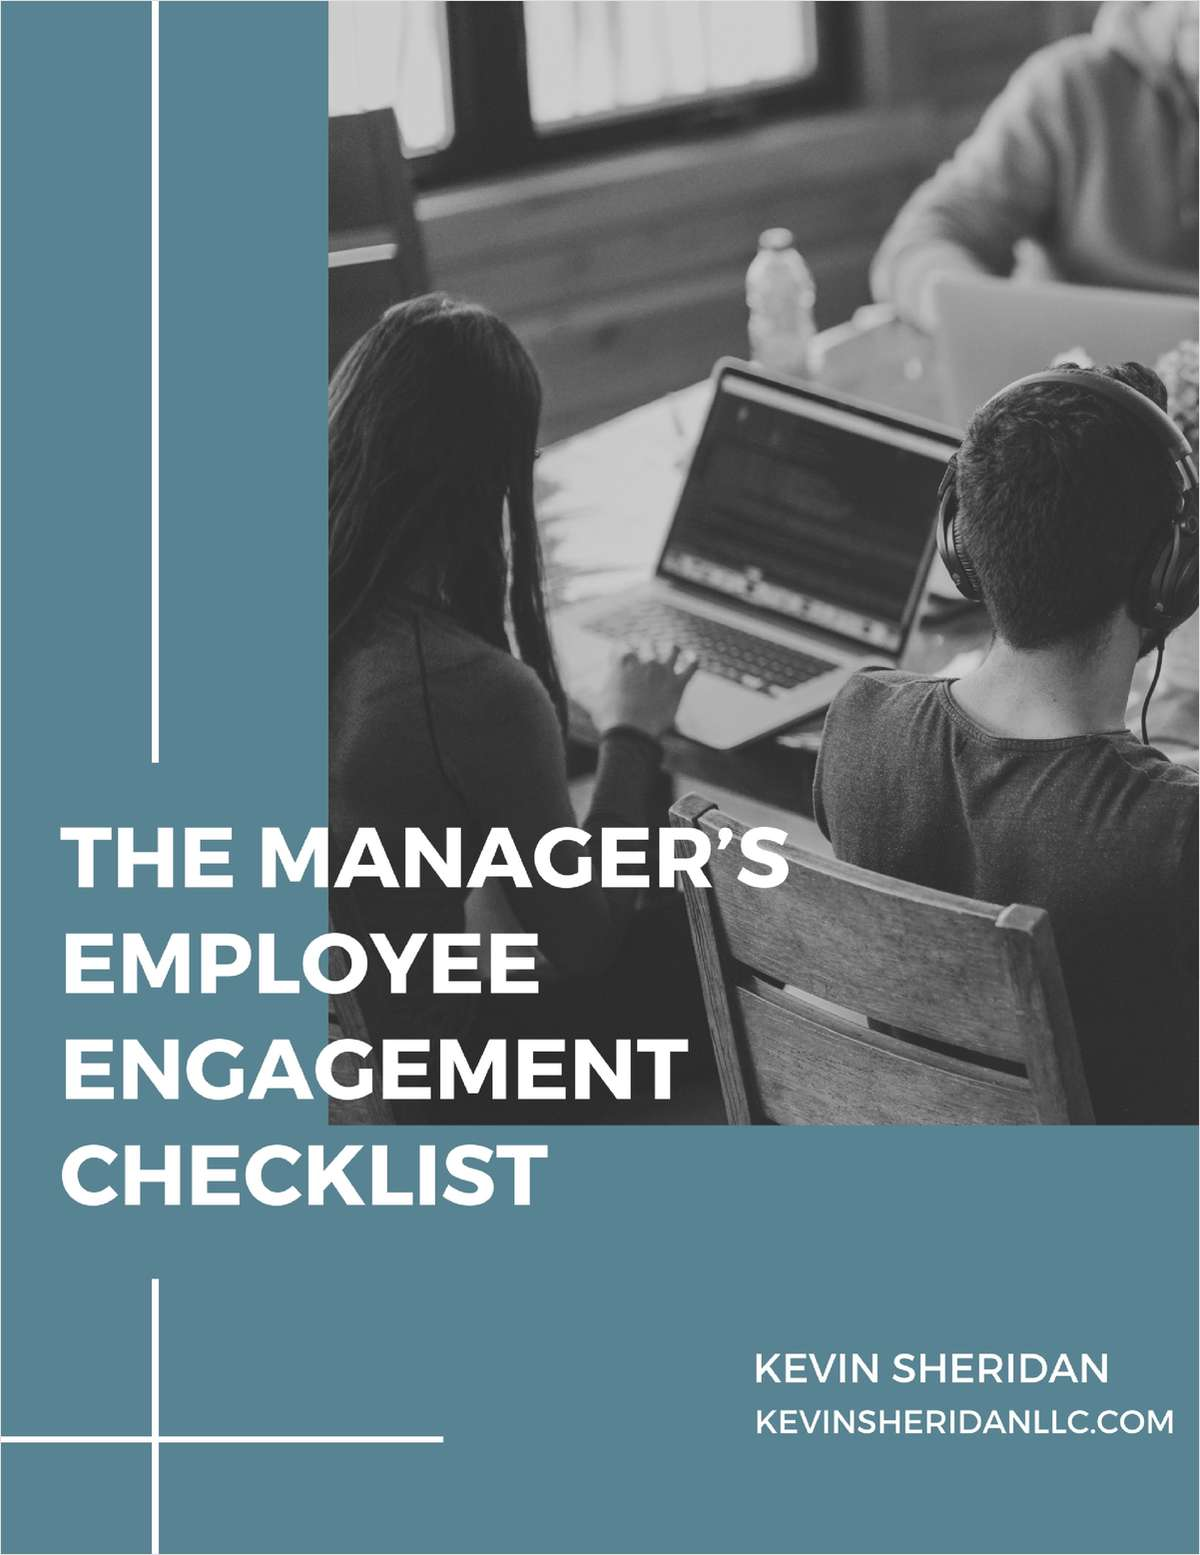 The Manager's Employee Engagement Checklist